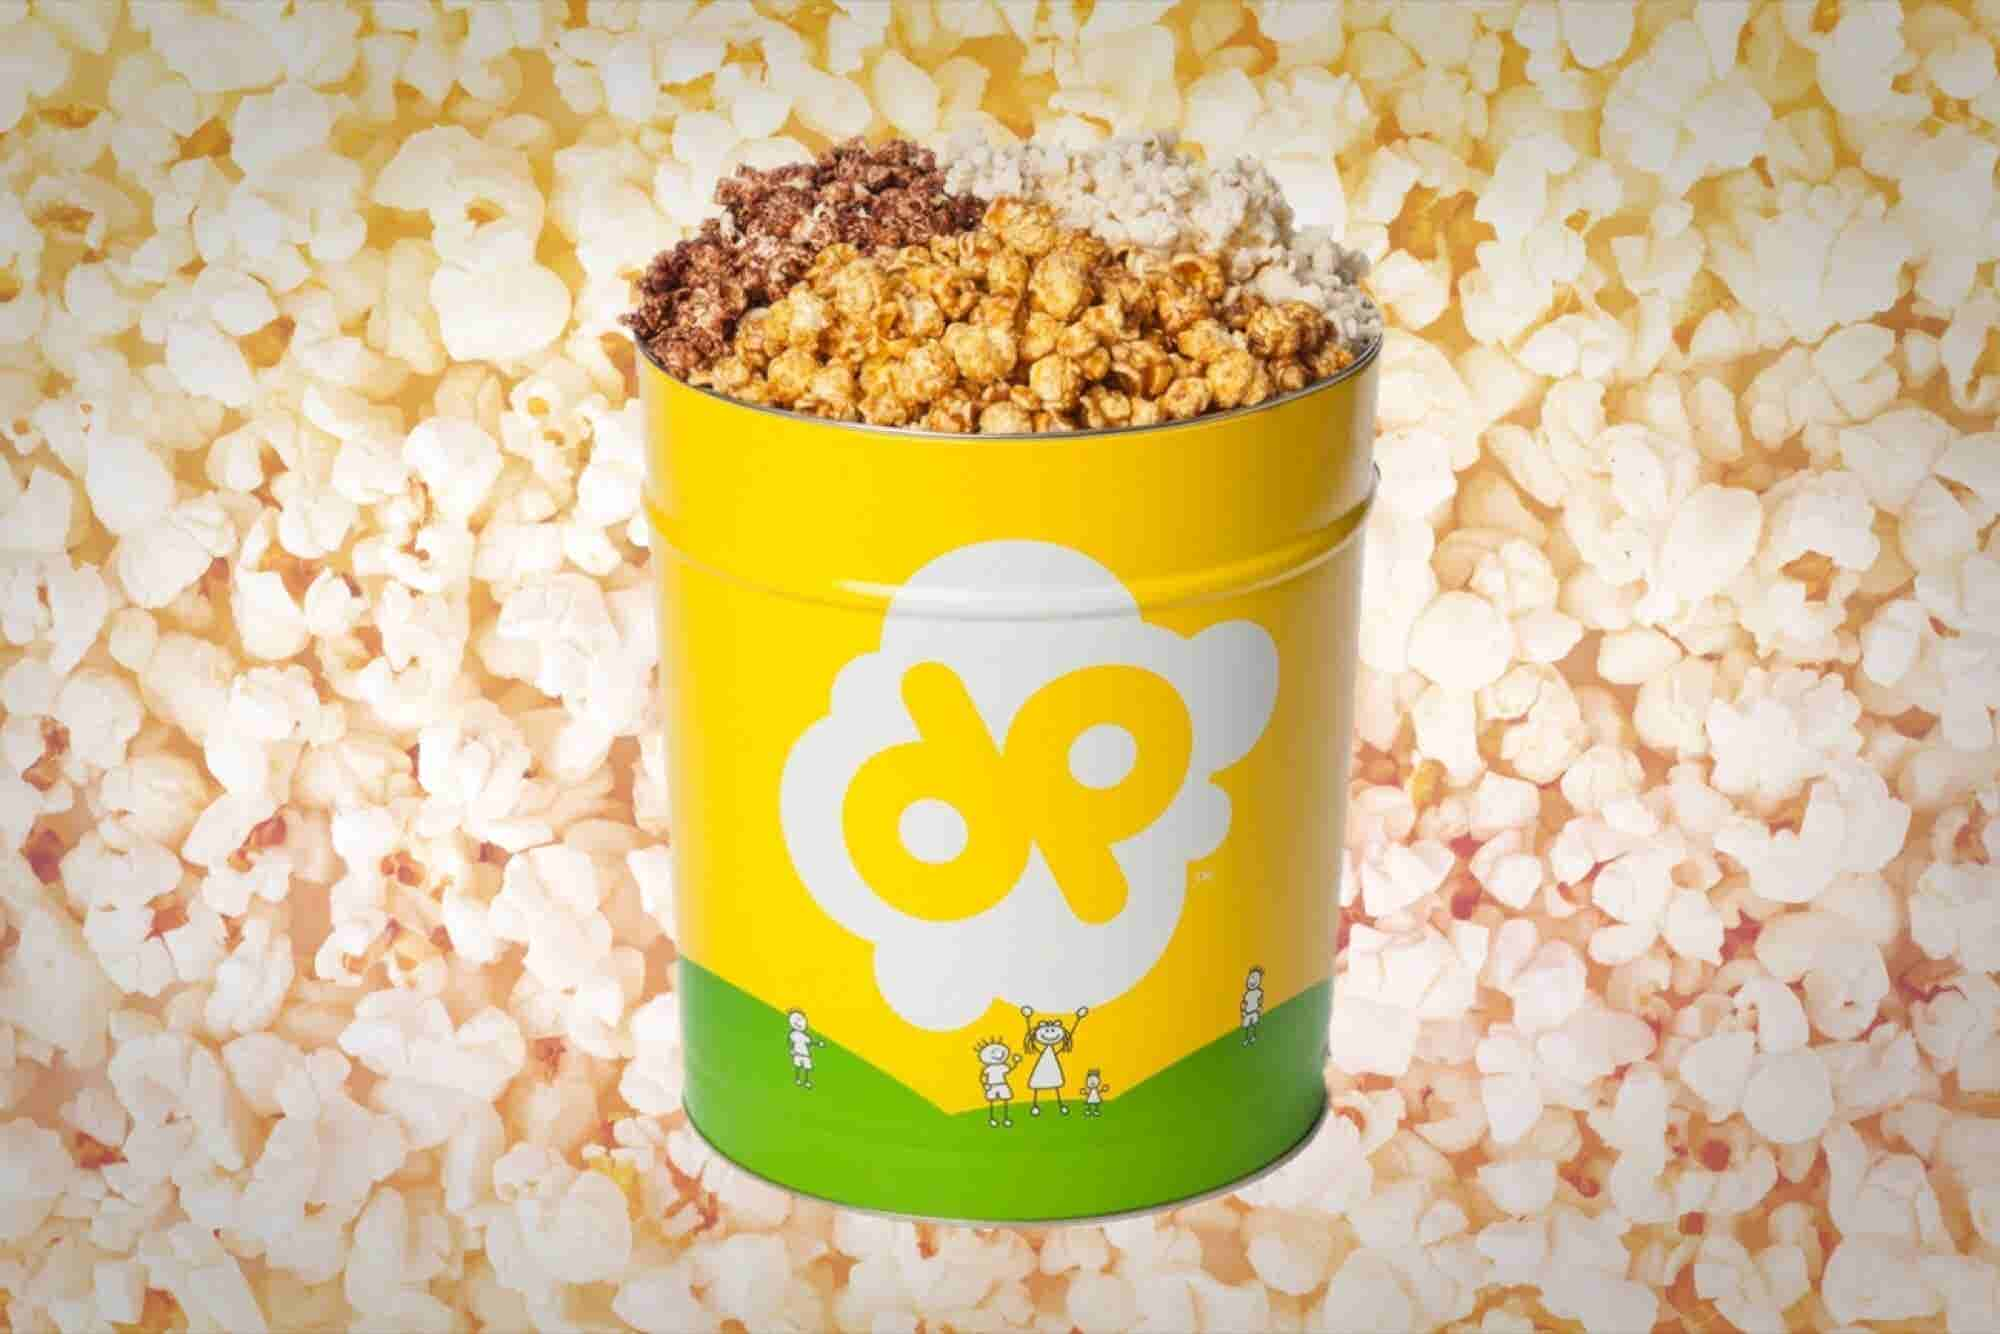 This Popcorn Franchisee Was 'The Boss' Until That Other 'Boss' (Springsteen) Popped Up